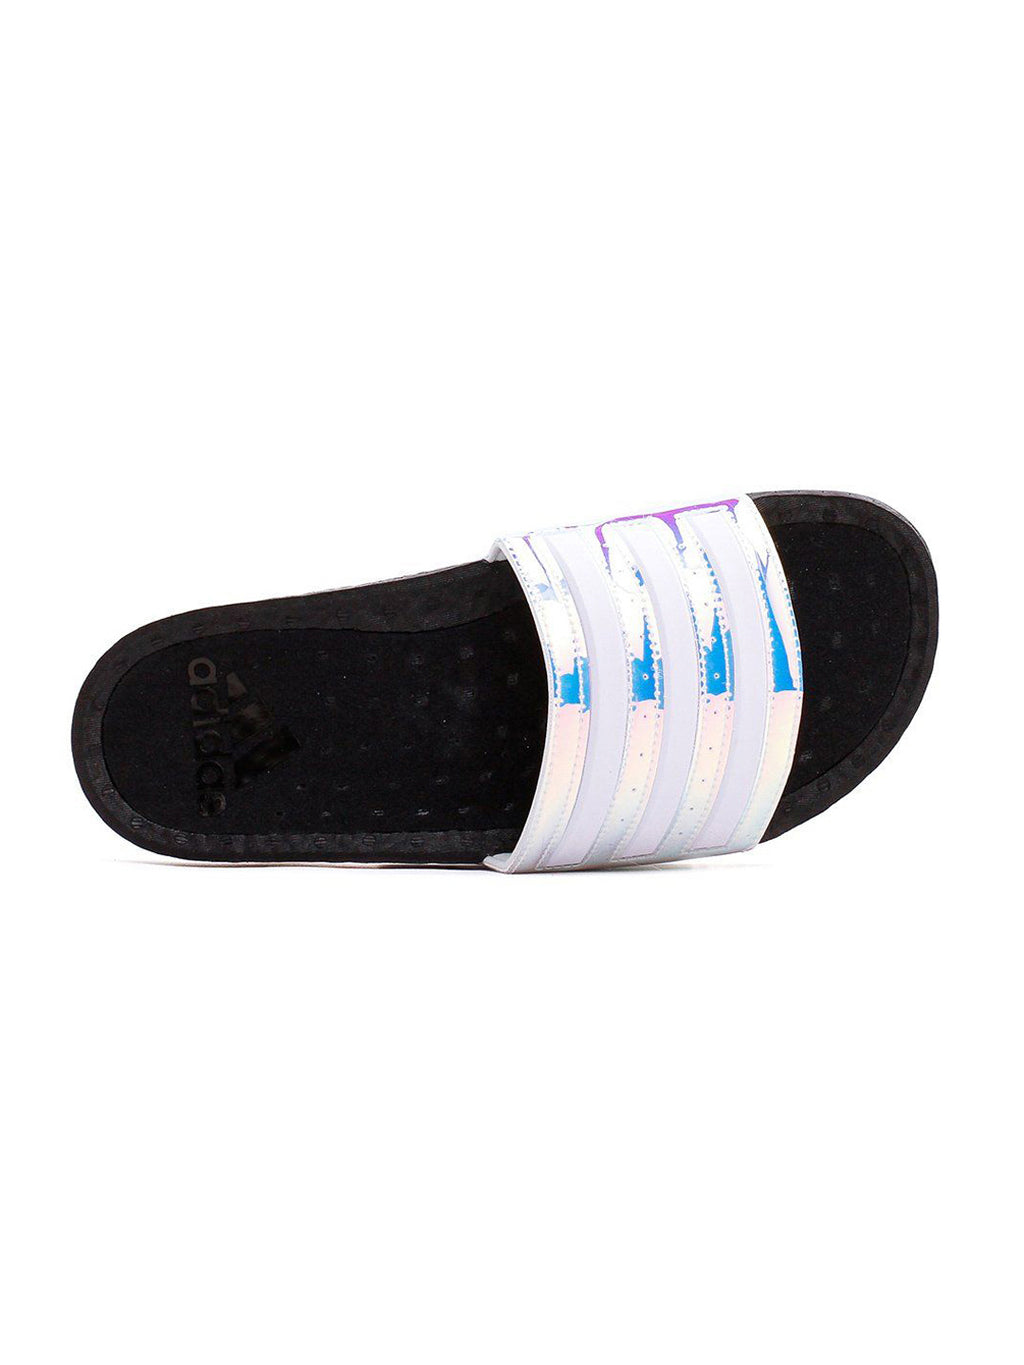 Black & White Adliette Boost Slides